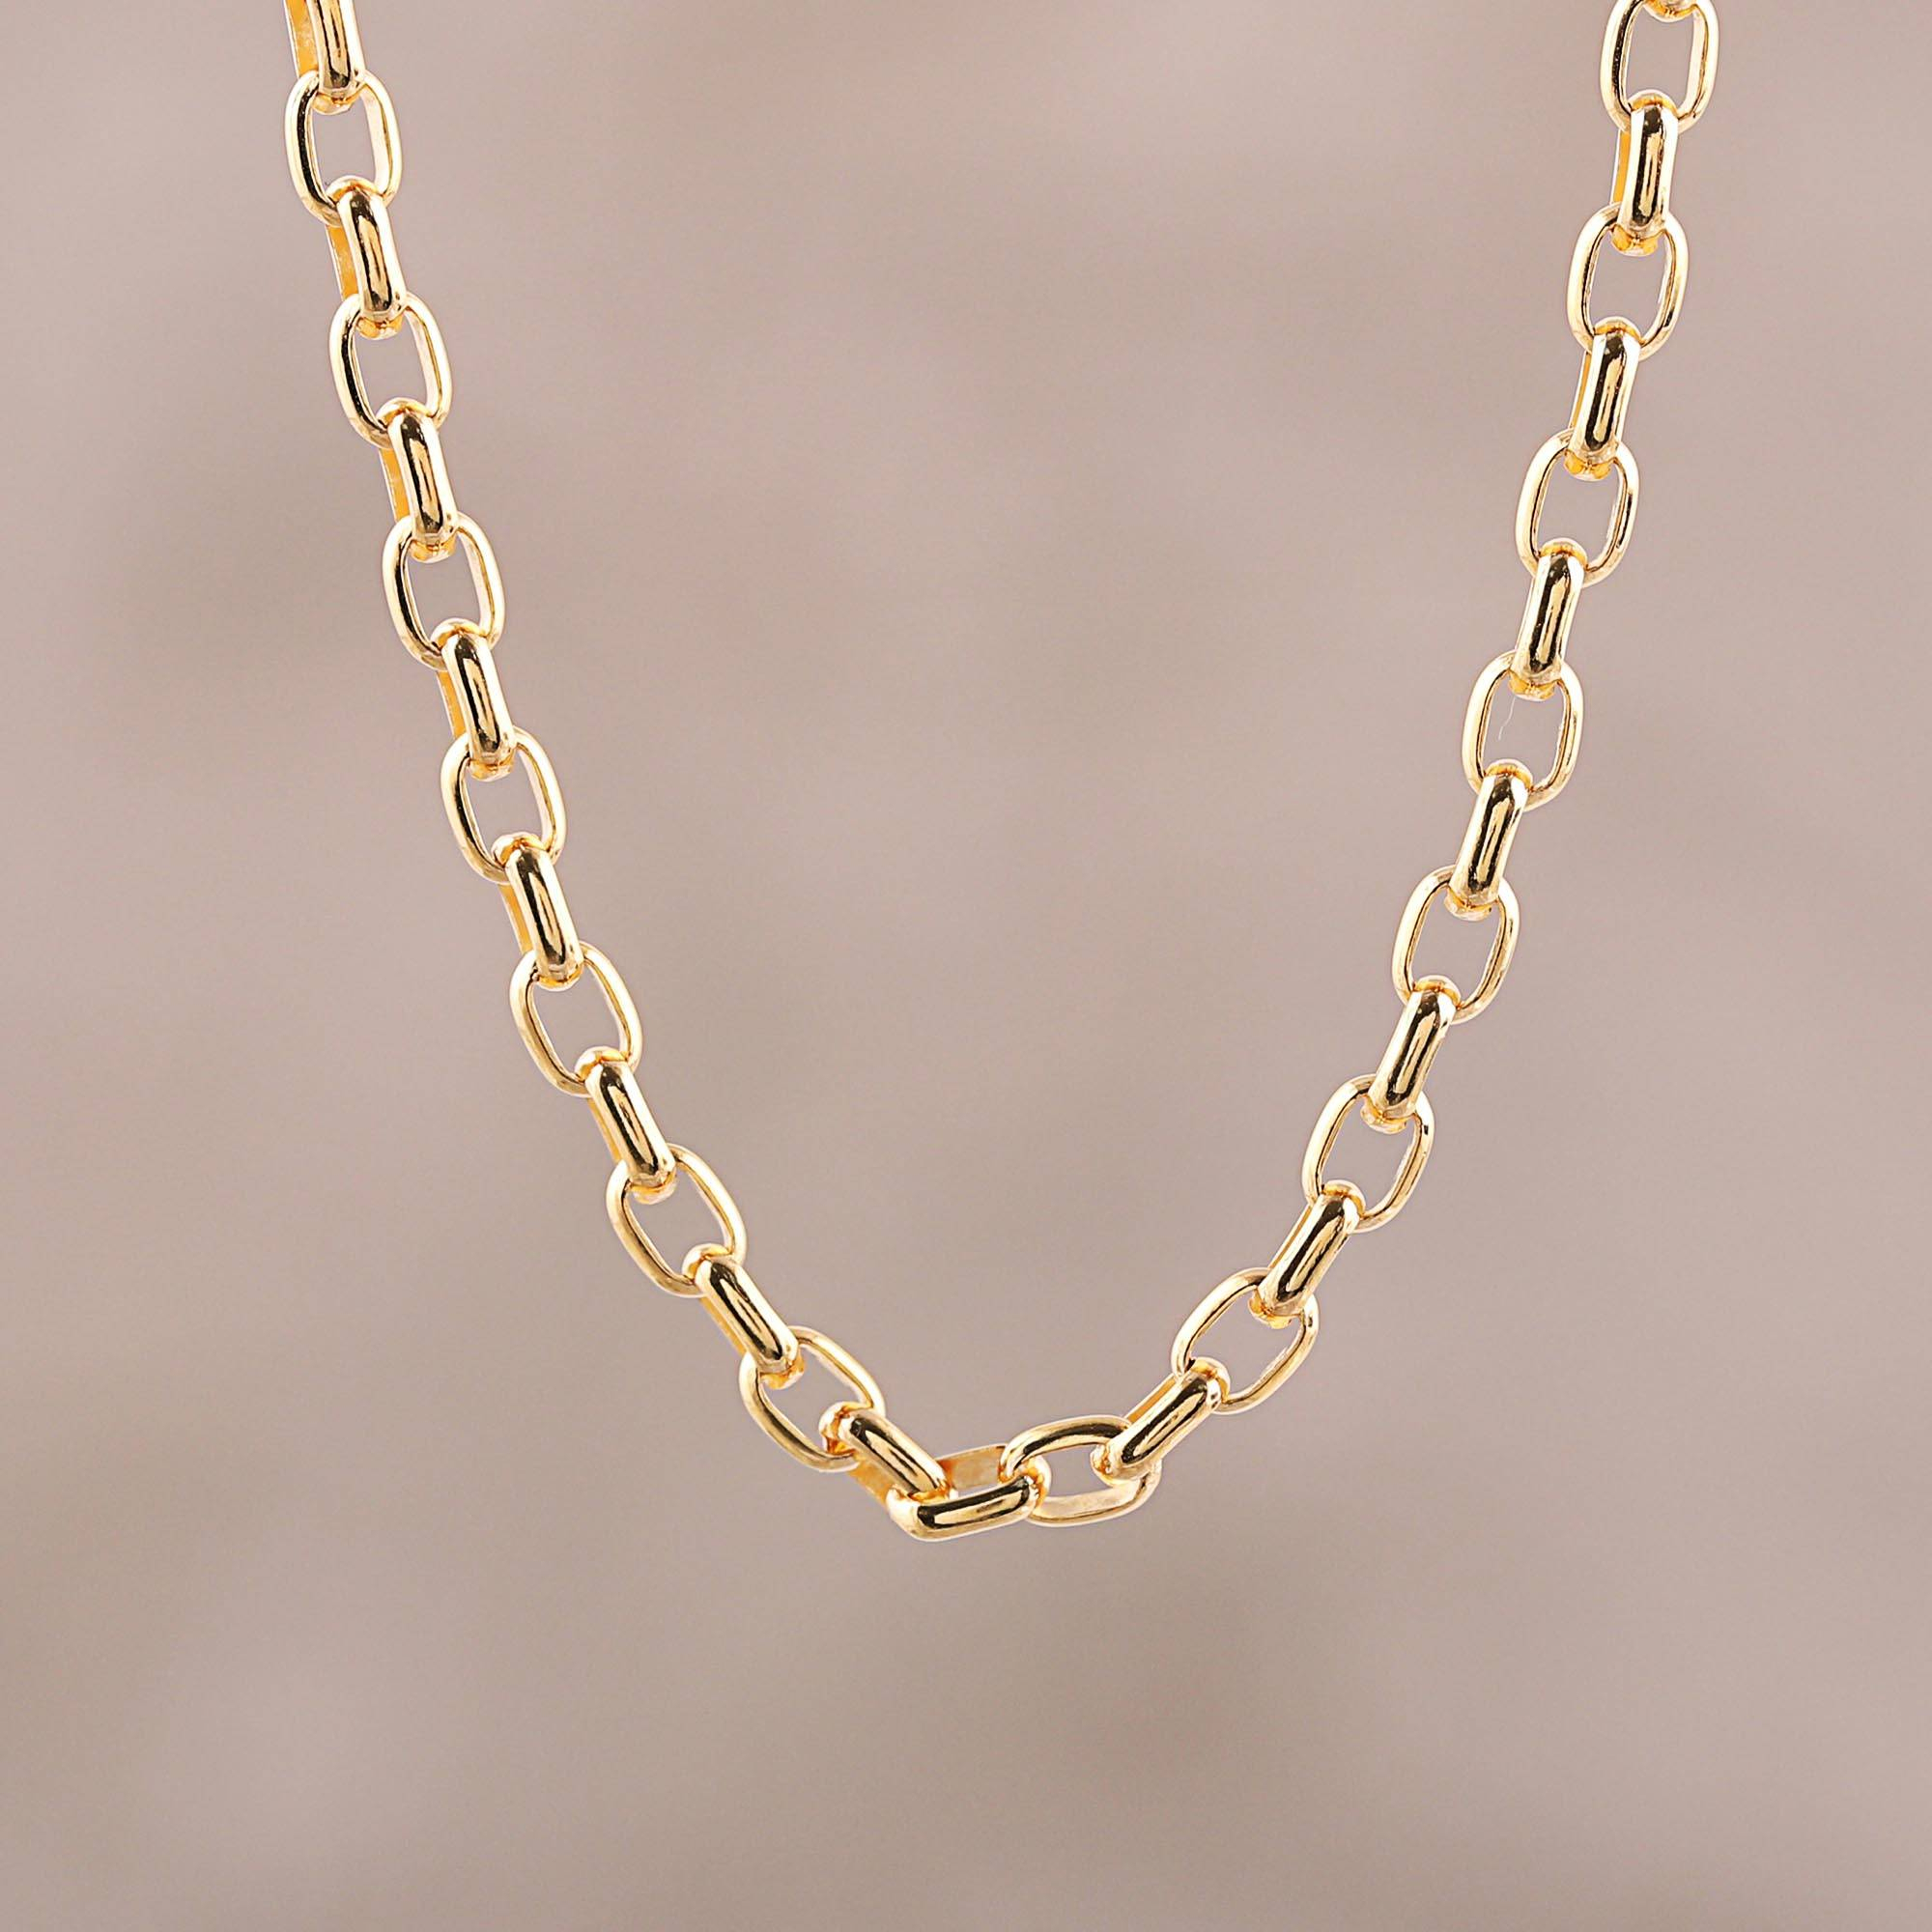 22K Gold Plated Sterling Silver Chain Necklace From India, 'classic Gold' Regarding Newest Classic Cable Chain Necklaces (Gallery 8 of 25)